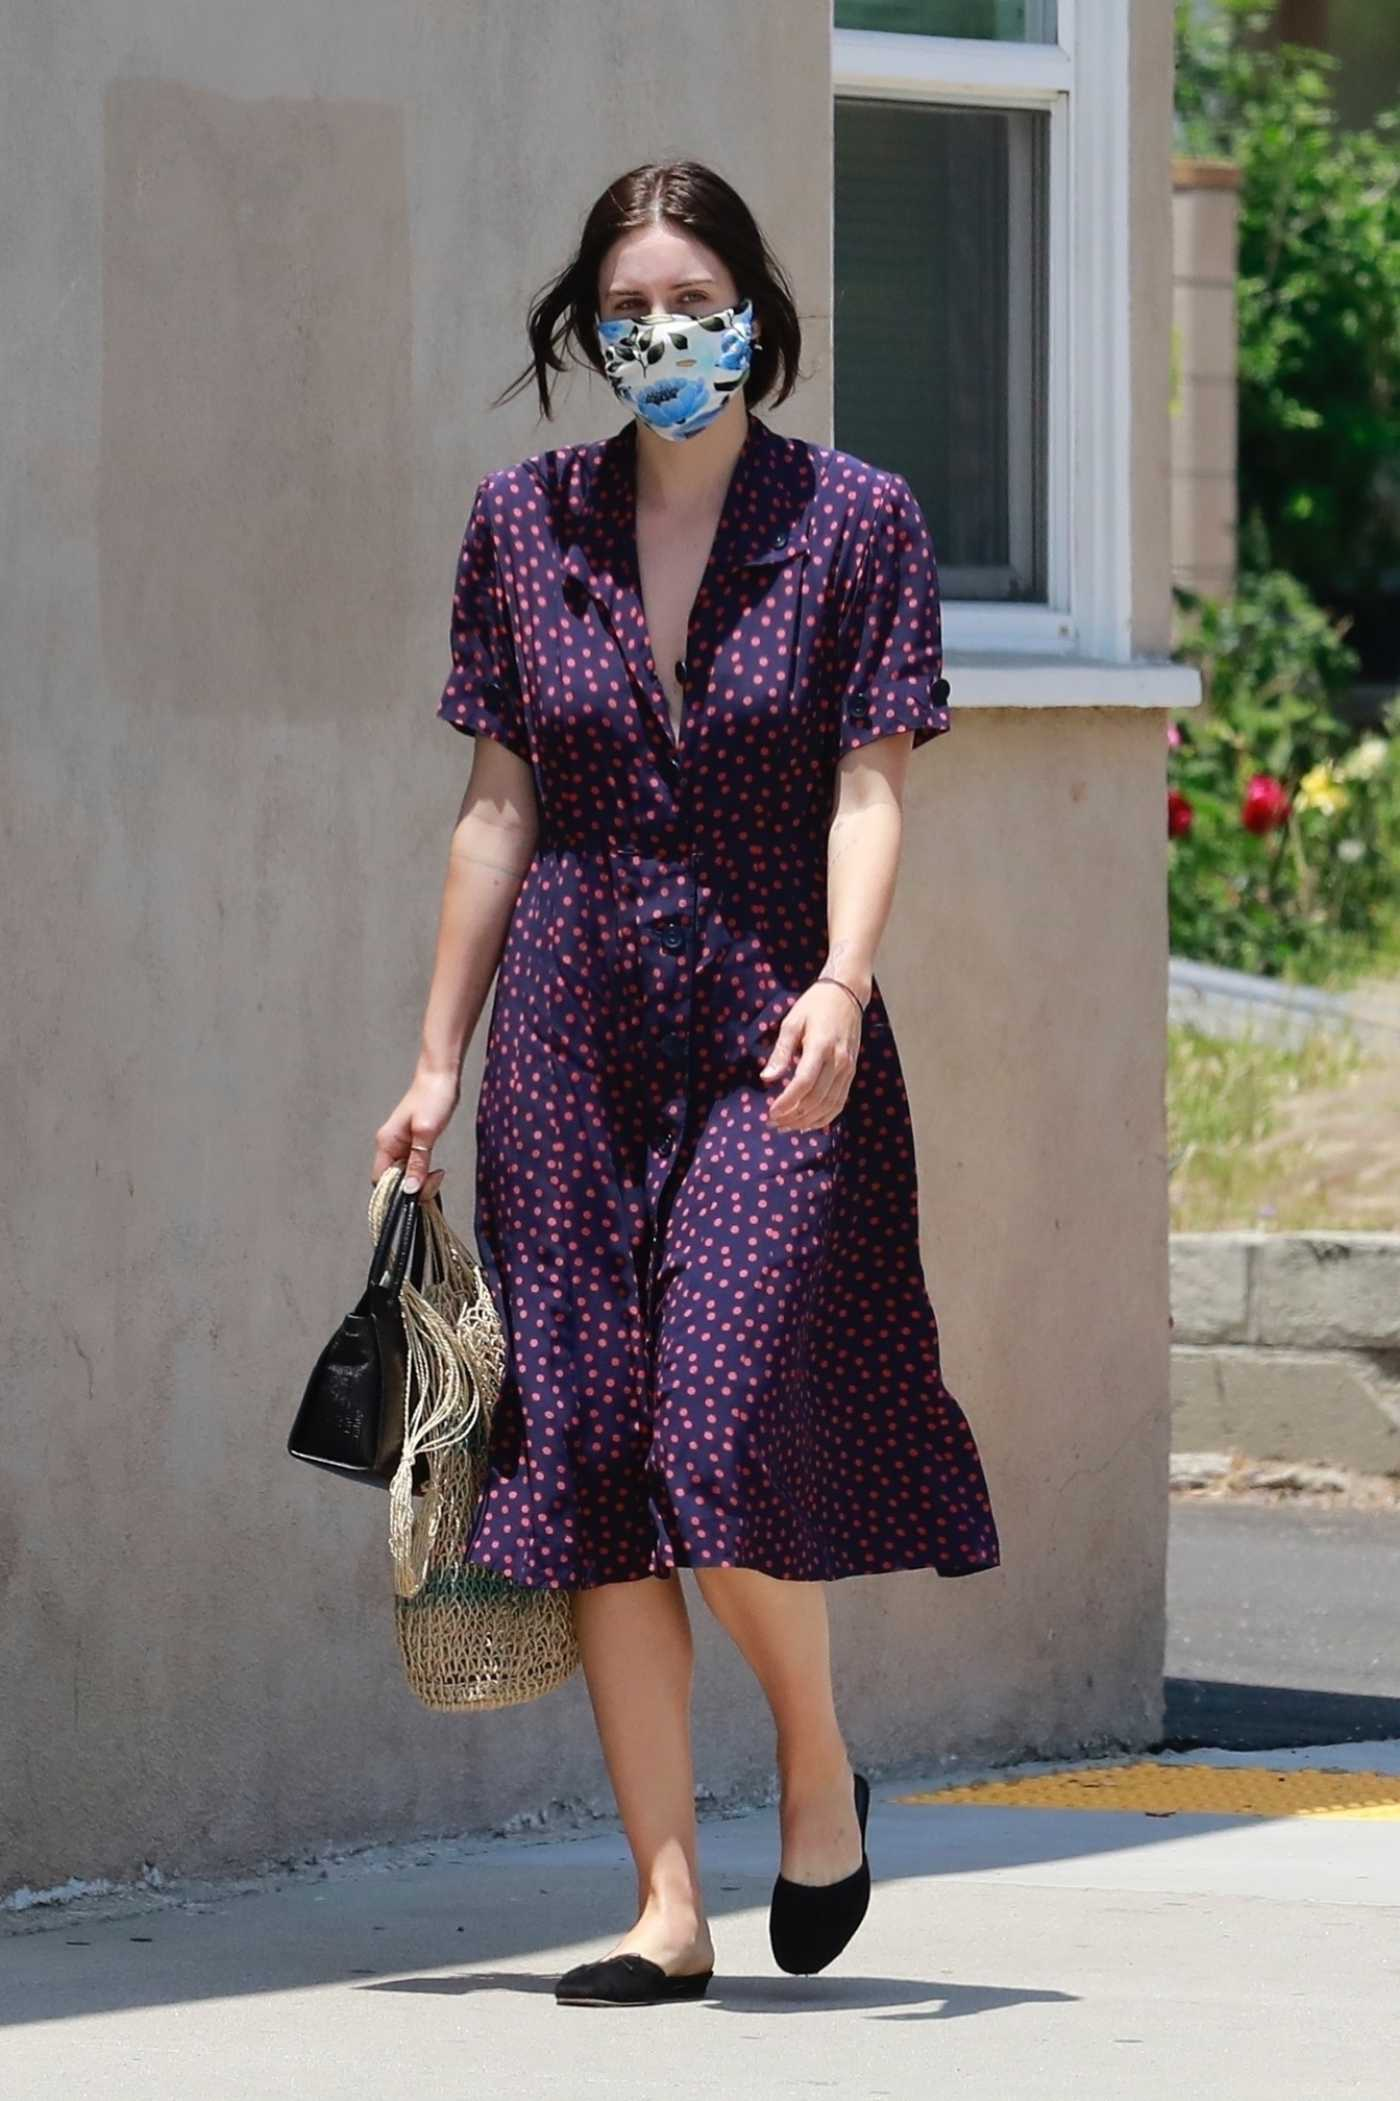 Scout Willis in a Purple Polka Dot Dress Shops at the Local Farmers Market in Glendale 06/21/2020